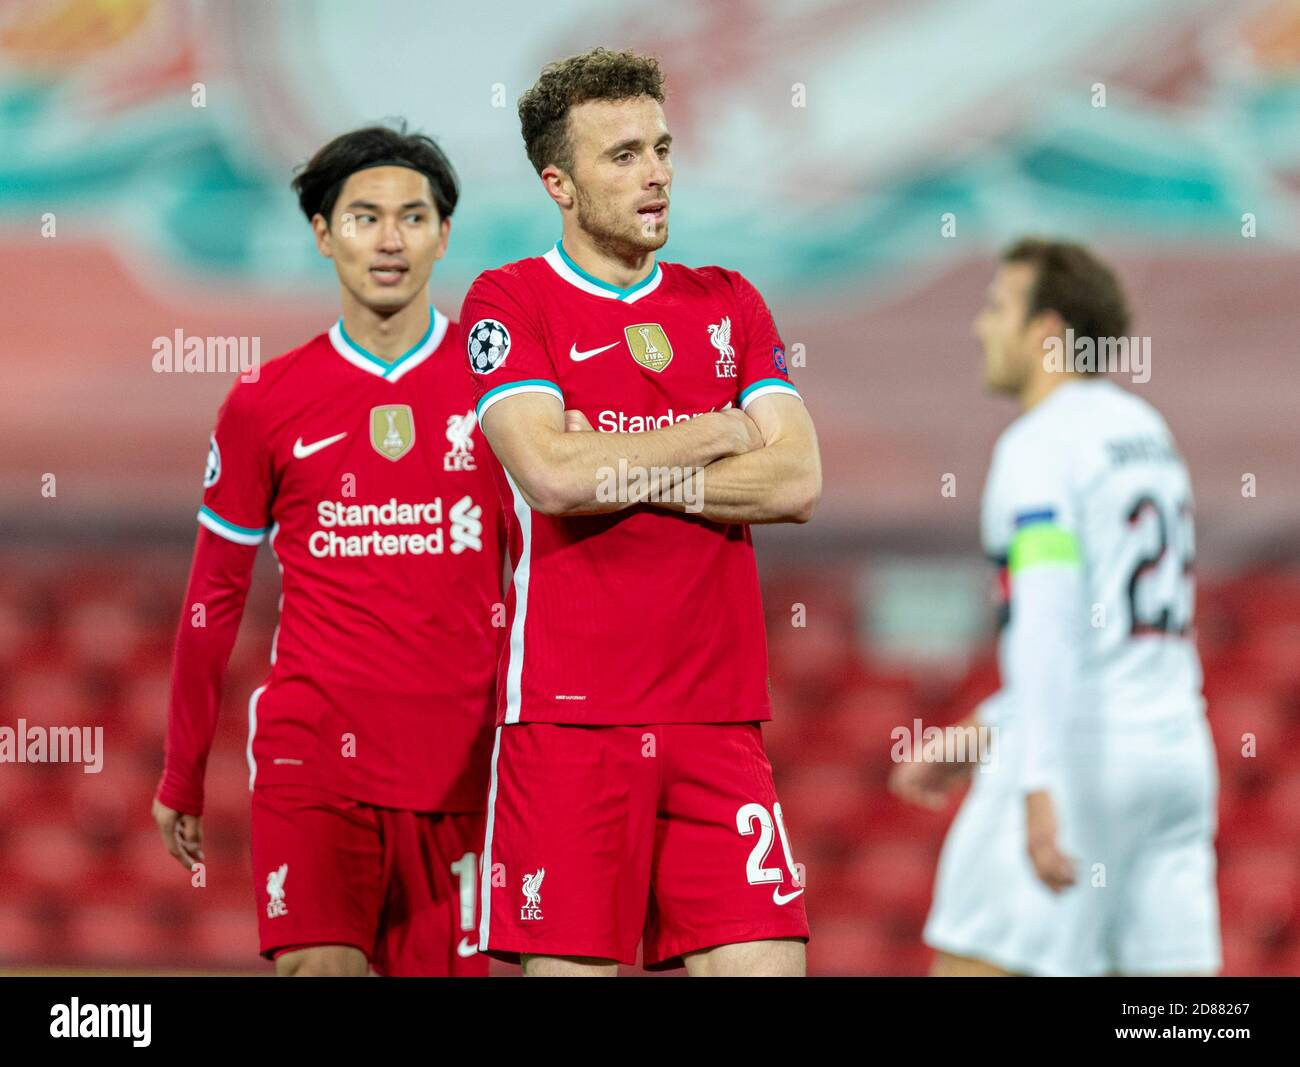 Diogo Jota High Resolution Stock Photography And Images Alamy